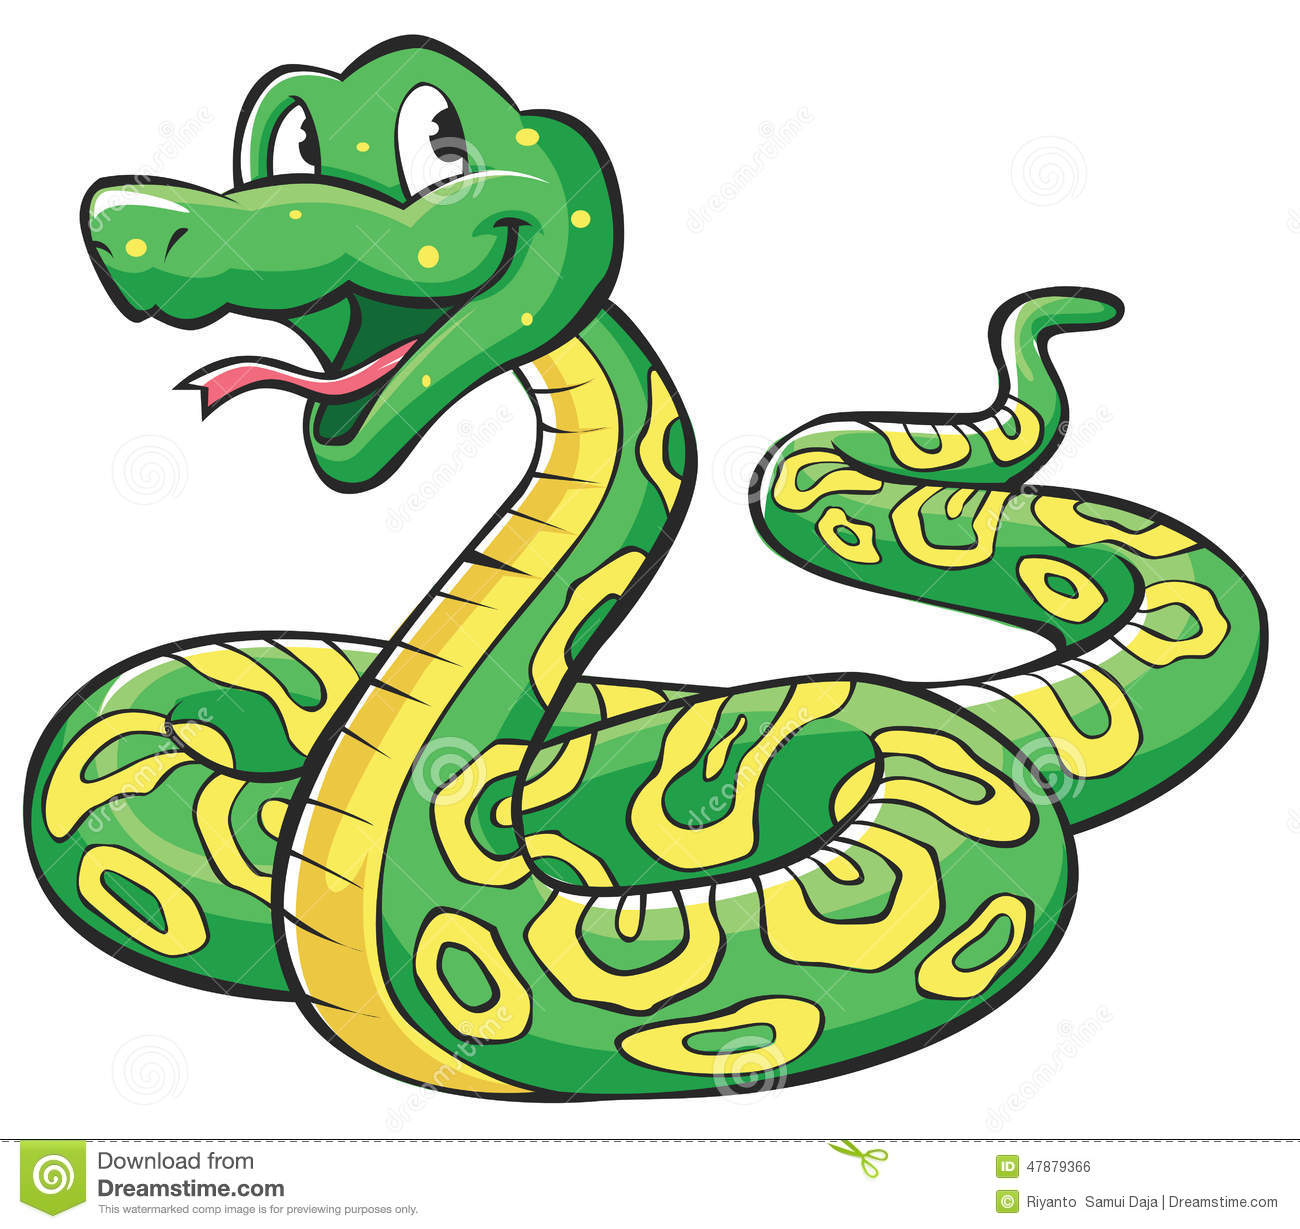 Snake Cartoon Stock Vector - Image: 47879366